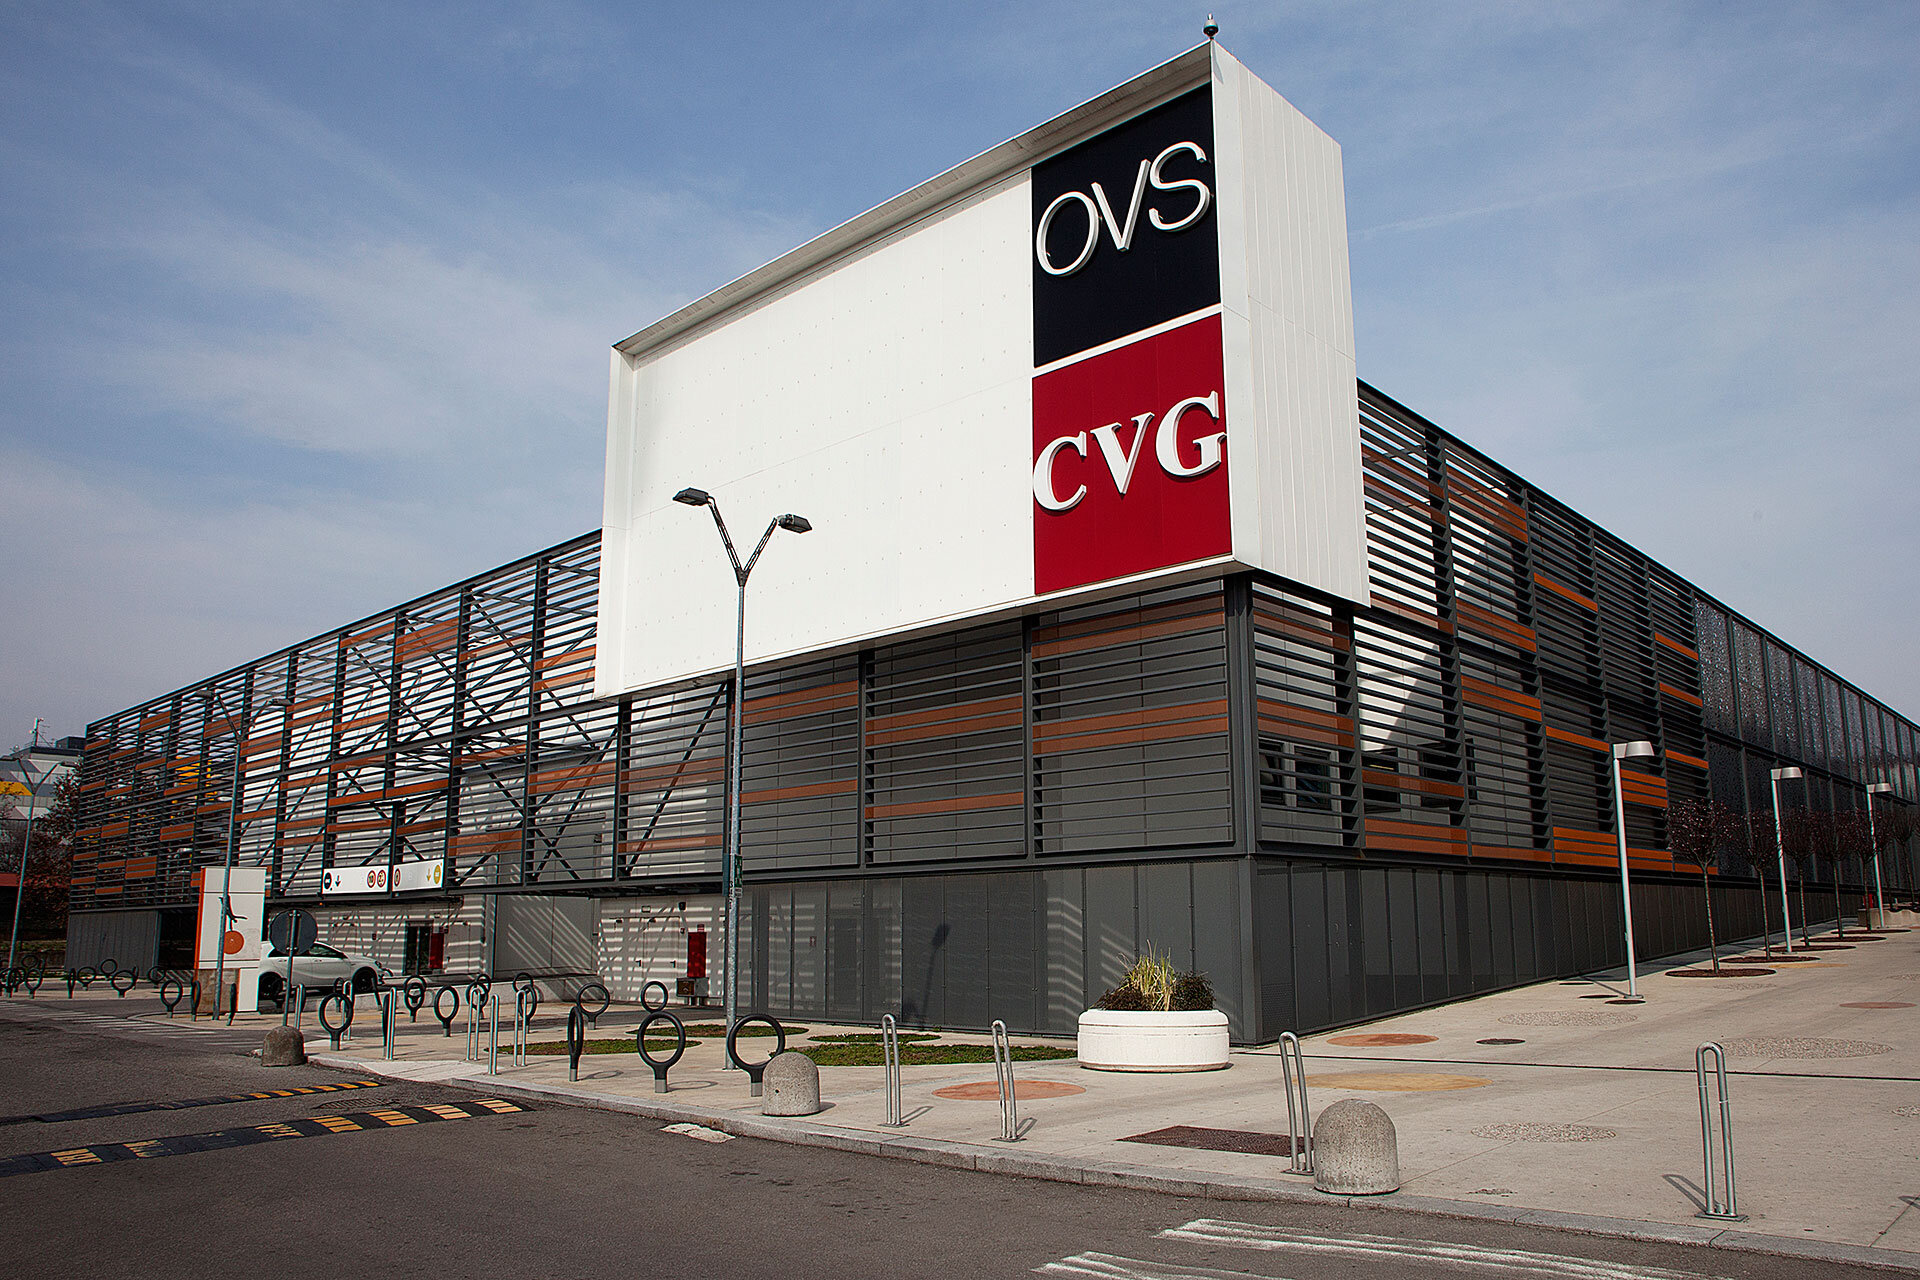 BICOCCA VILLAGE - GATE & CINEMA 4